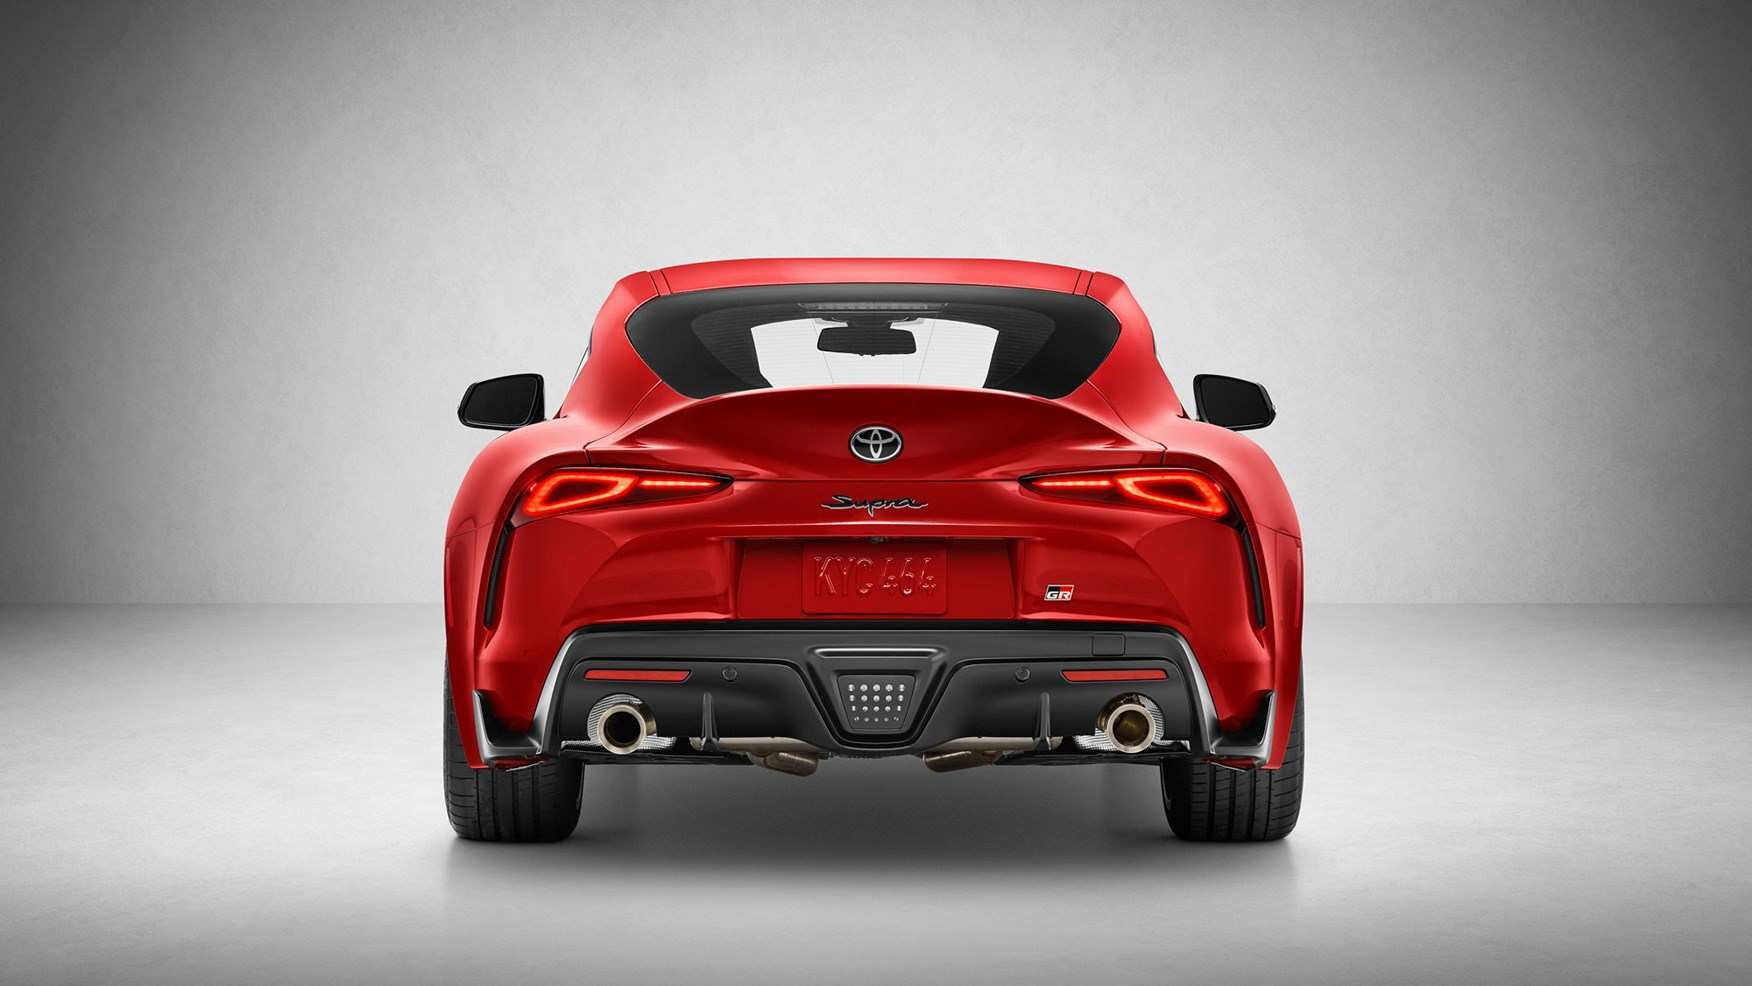 54 All New 2019 Toyota Supra Exterior with 2019 Toyota Supra